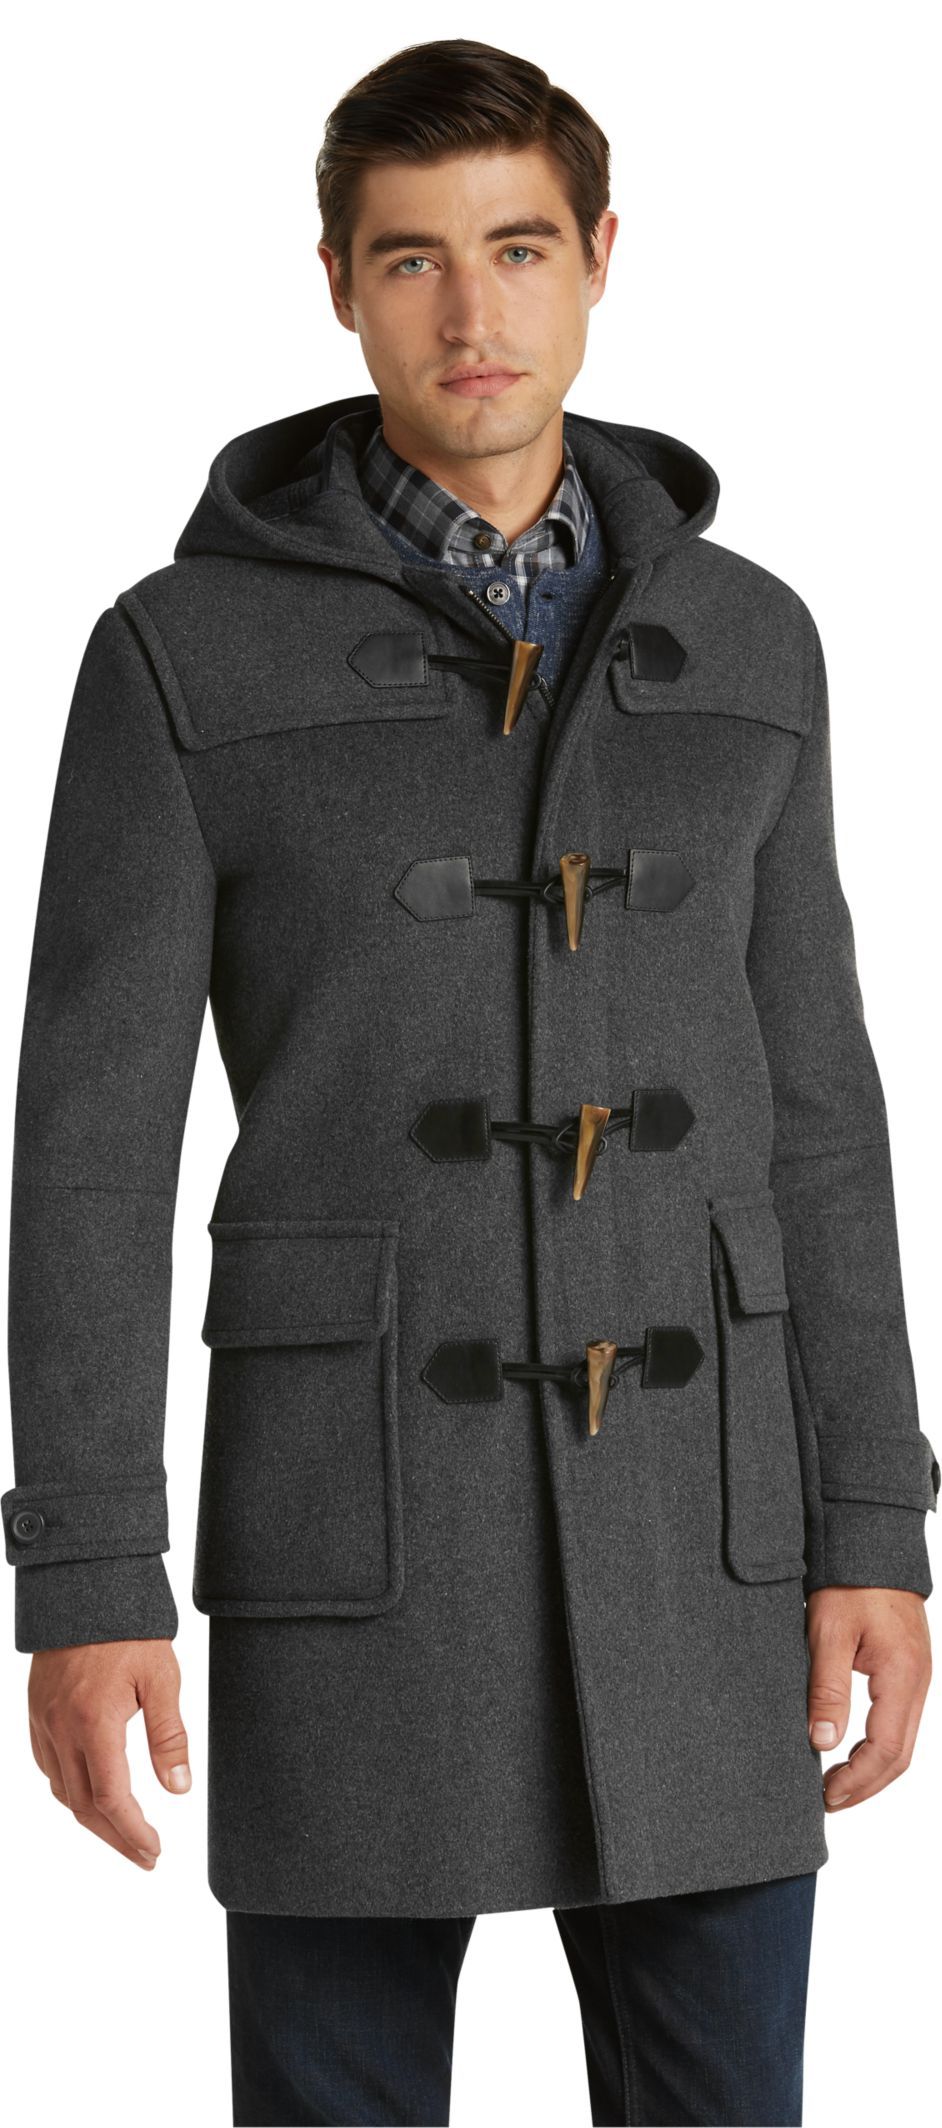 1905 Collection Tailored Fit 3/4 Length Duffle Coat CLEARANCE ...